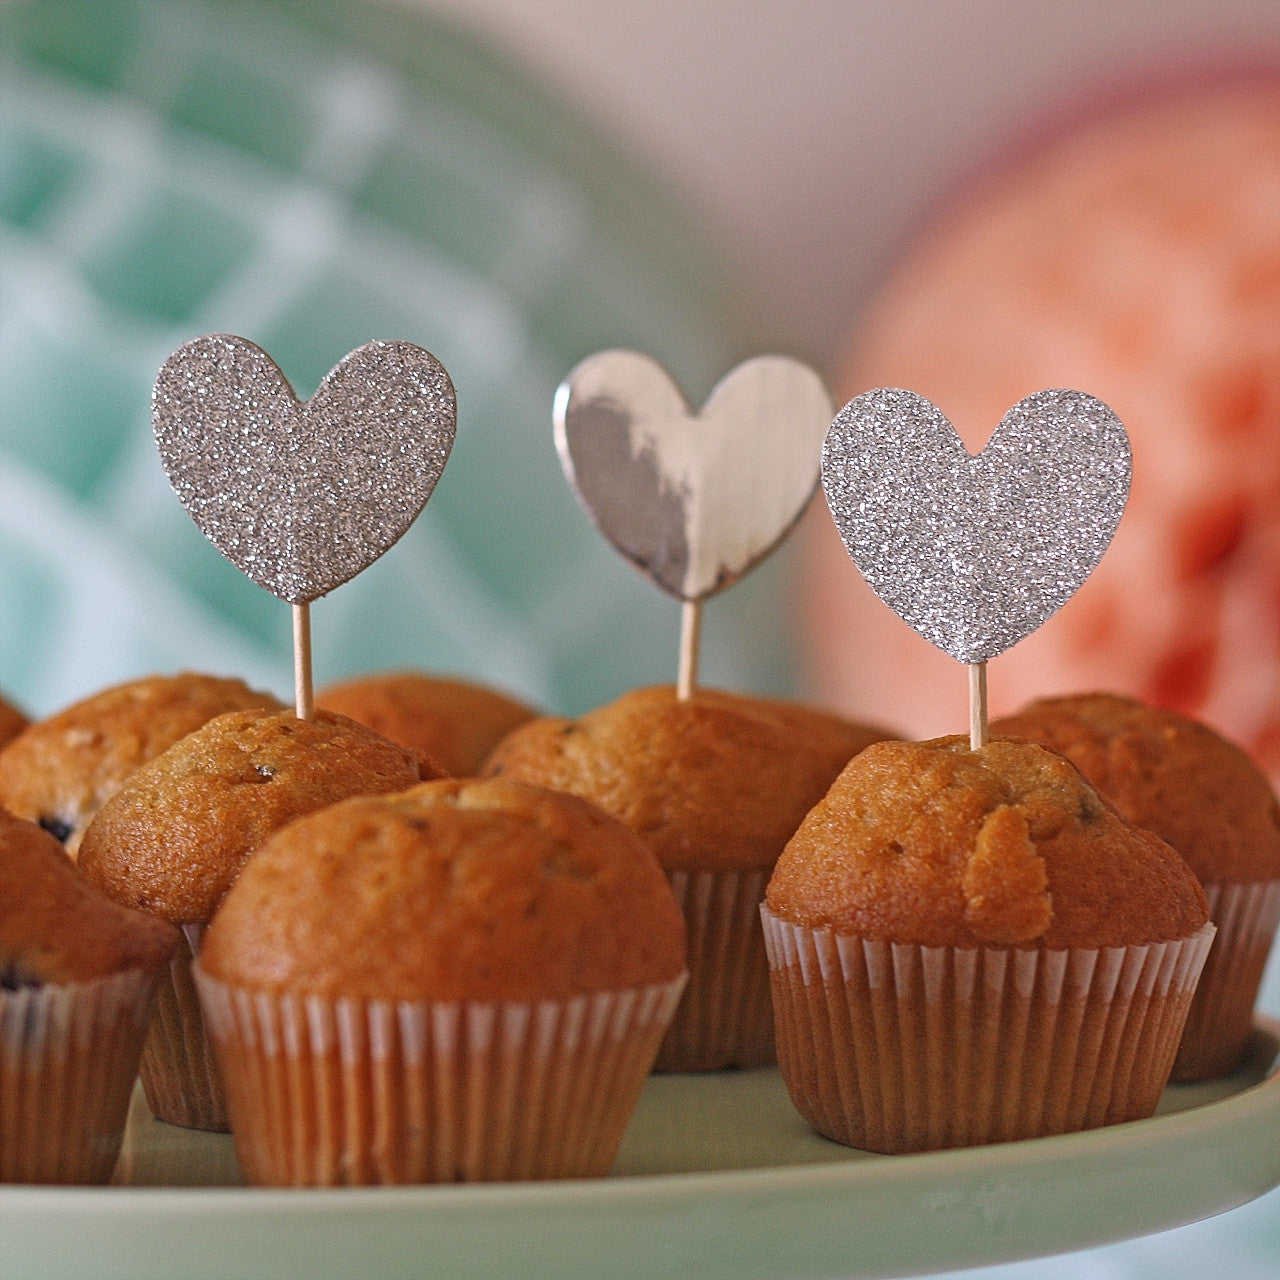 Silver Glitter Heart Cake Toppers – The Wedding of My Dreams